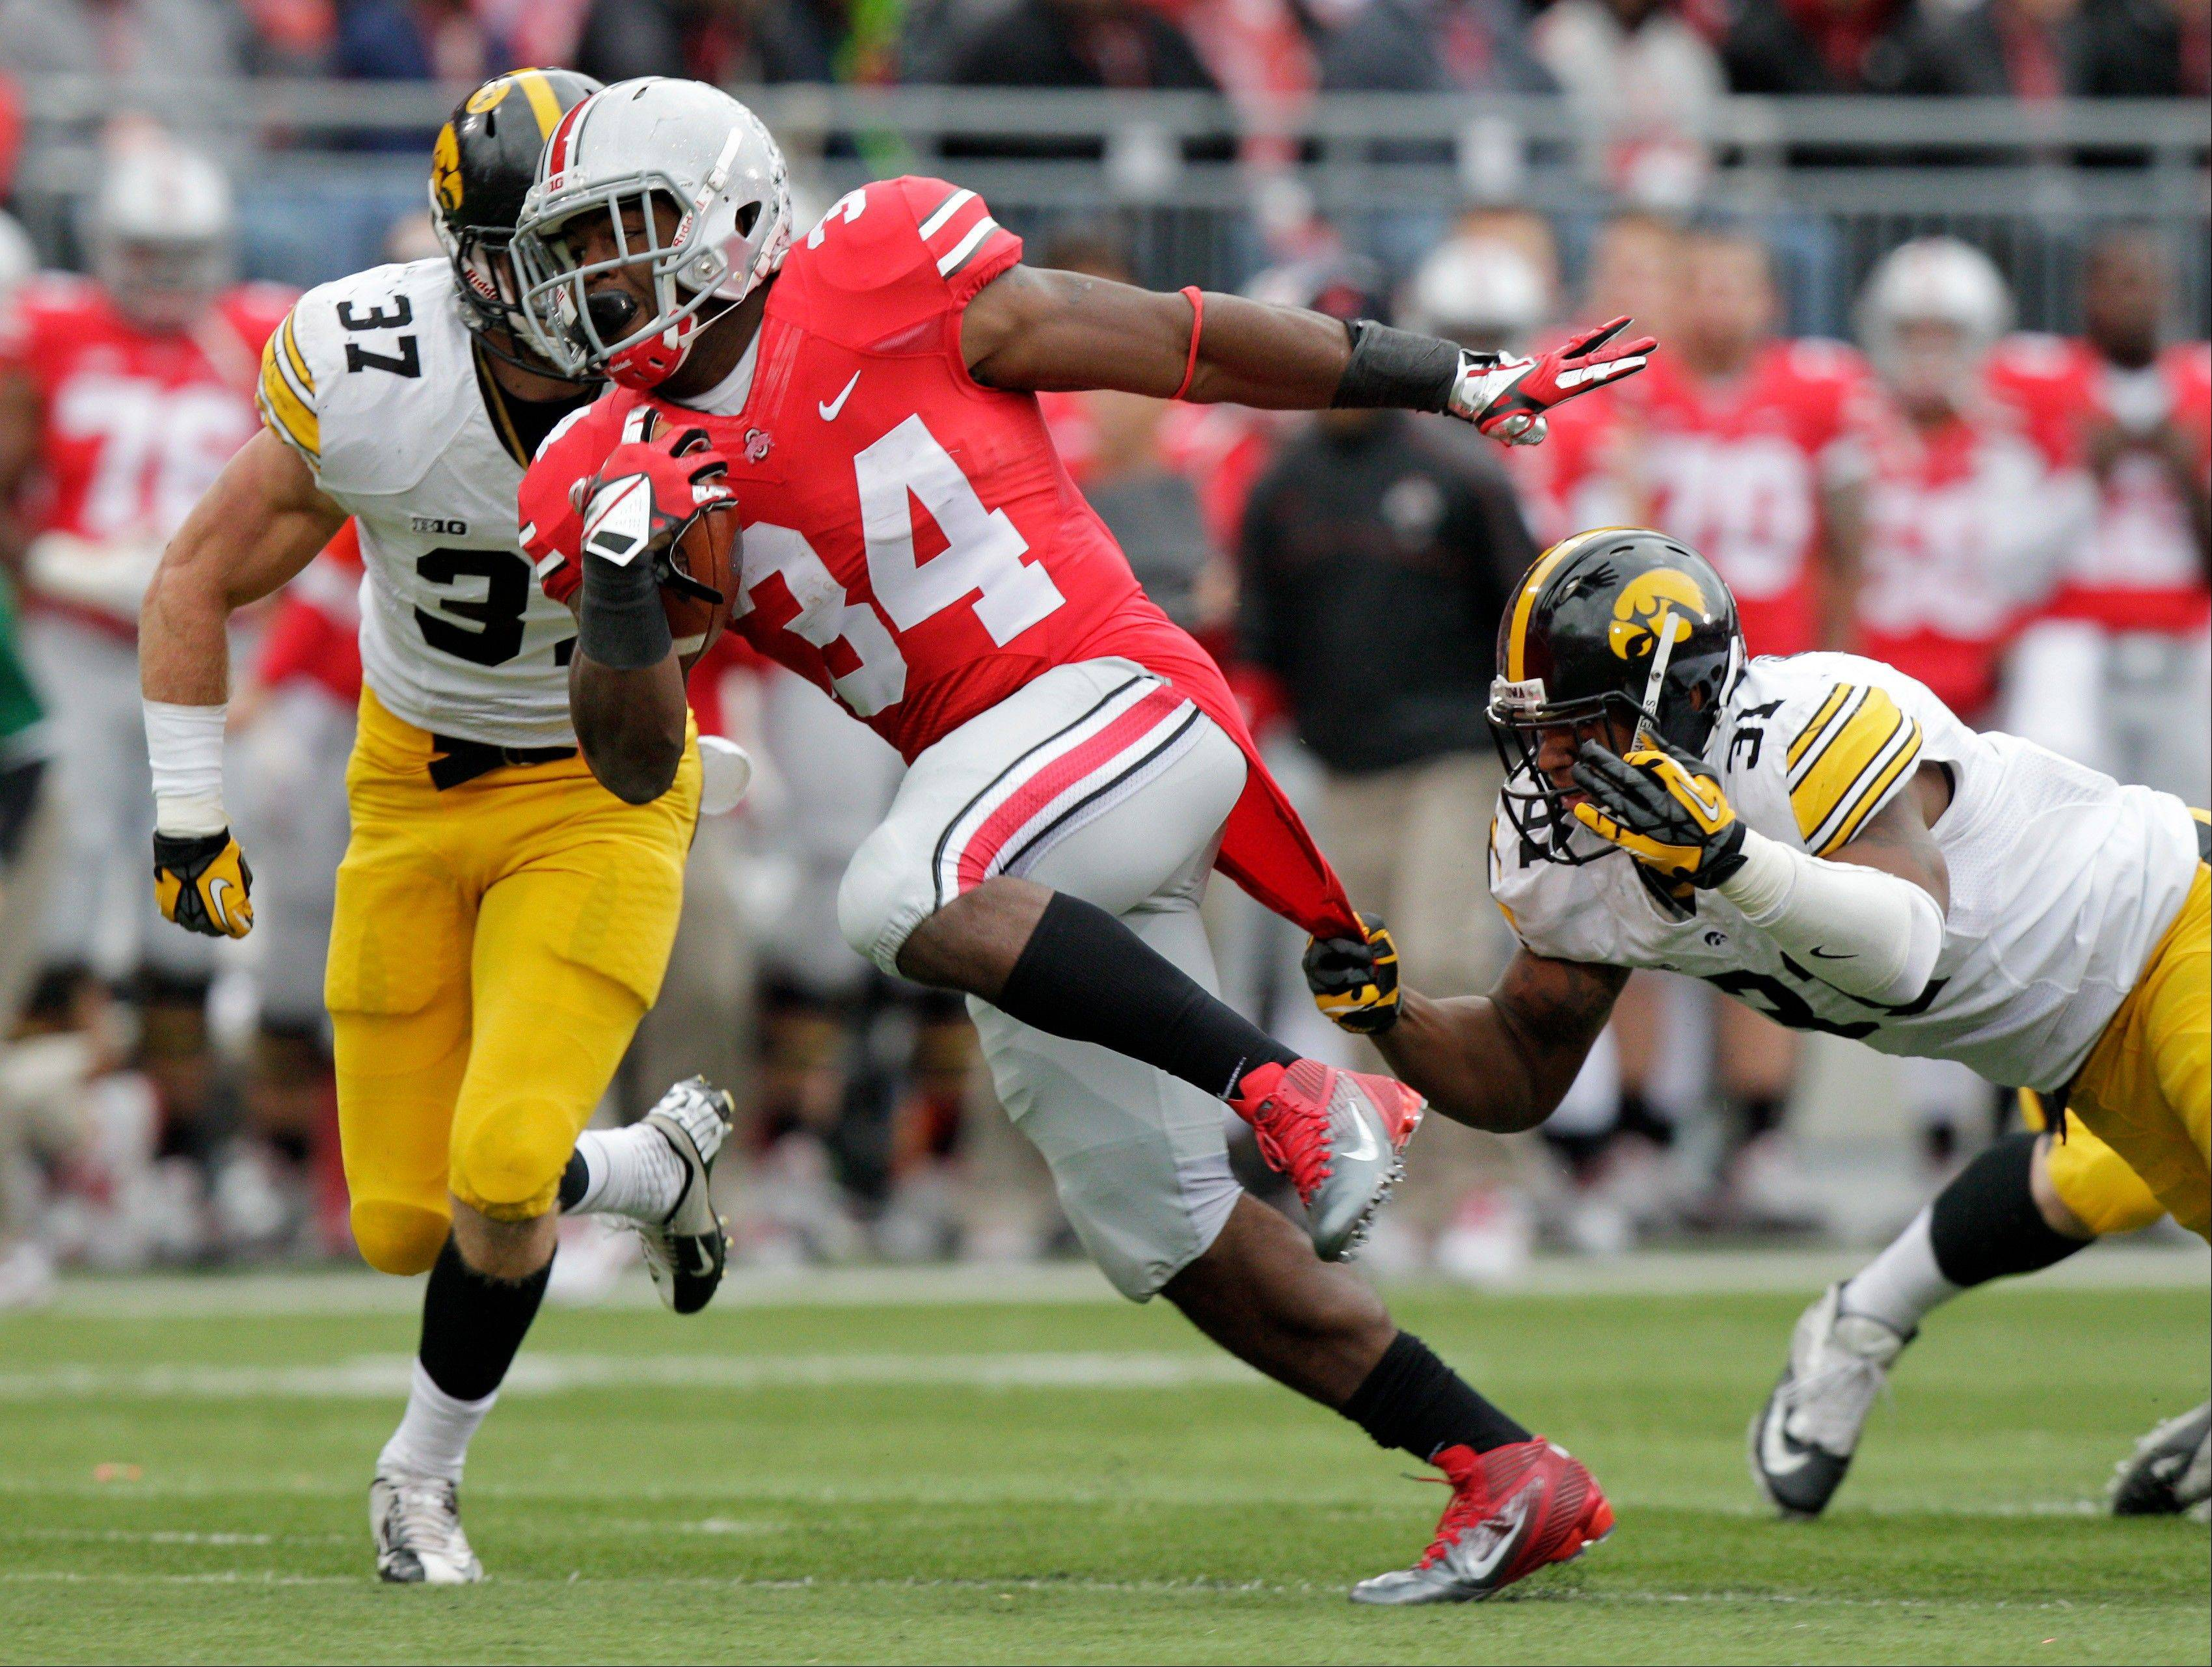 Ohio State running back Carlos Hyde, center, crosses the line of scrimmage between Iowa defenders John Lowdermilk, left, and Anthony Hitchens during the second quarter.